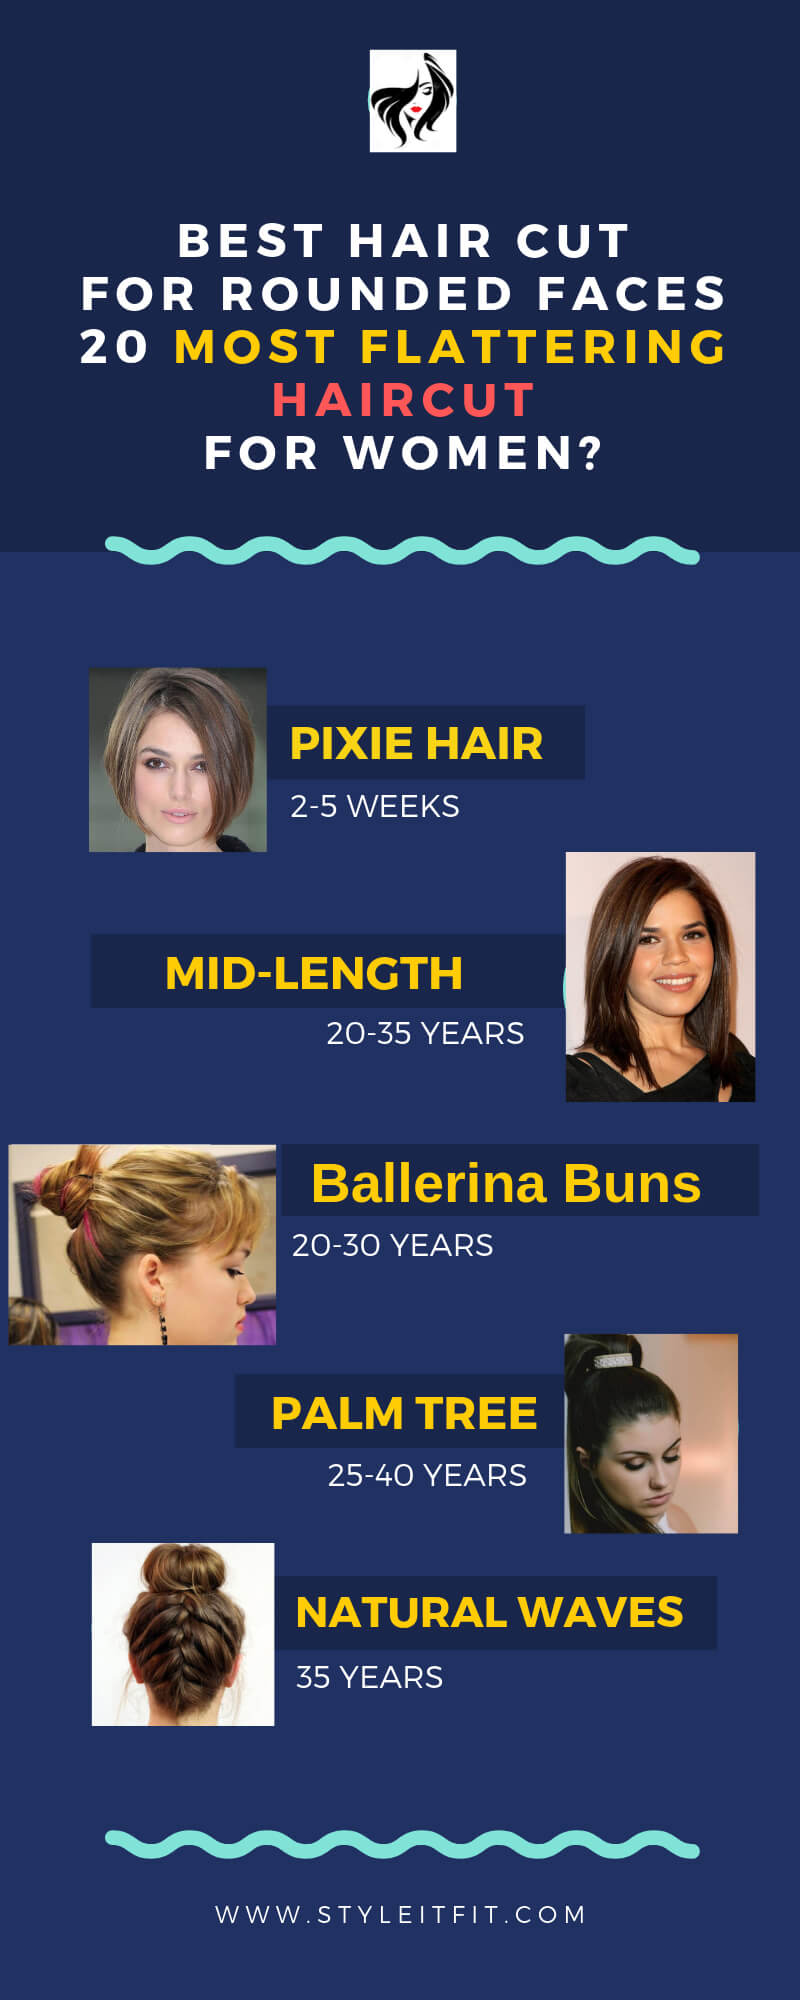 hair cut for women rounded faces